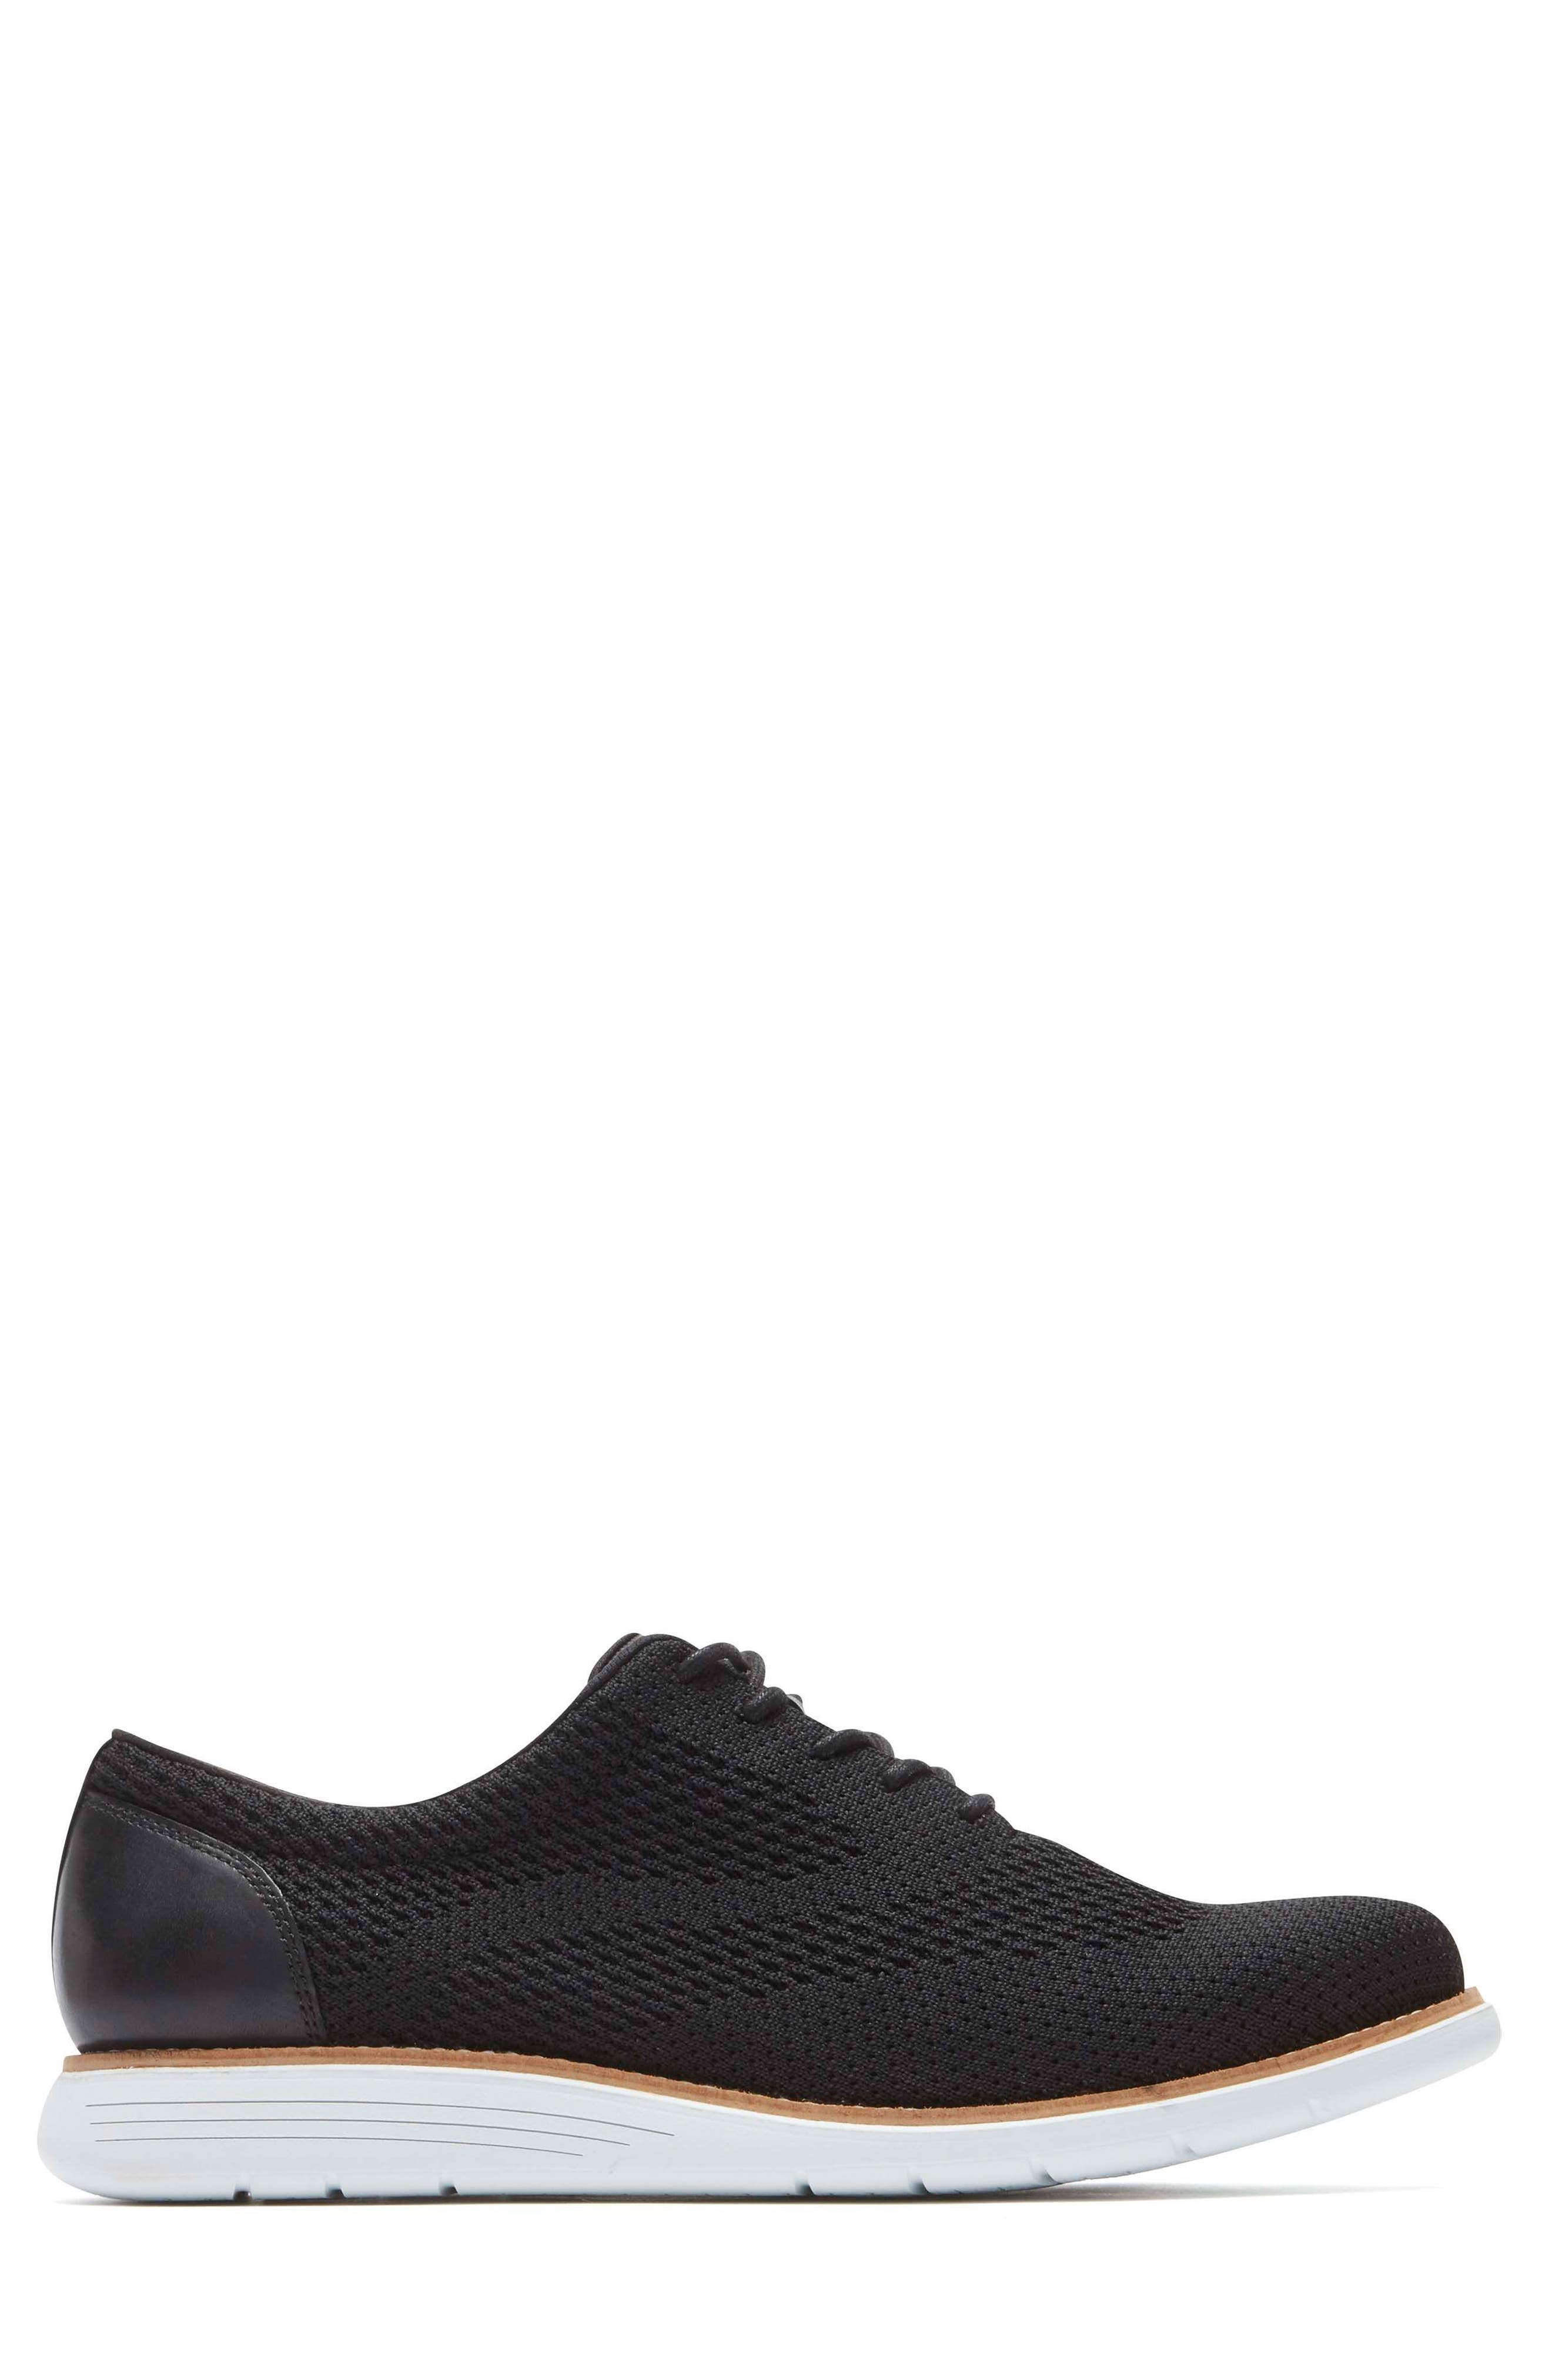 Total Motion Sport Oxford,                             Alternate thumbnail 3, color,                             Black Leather